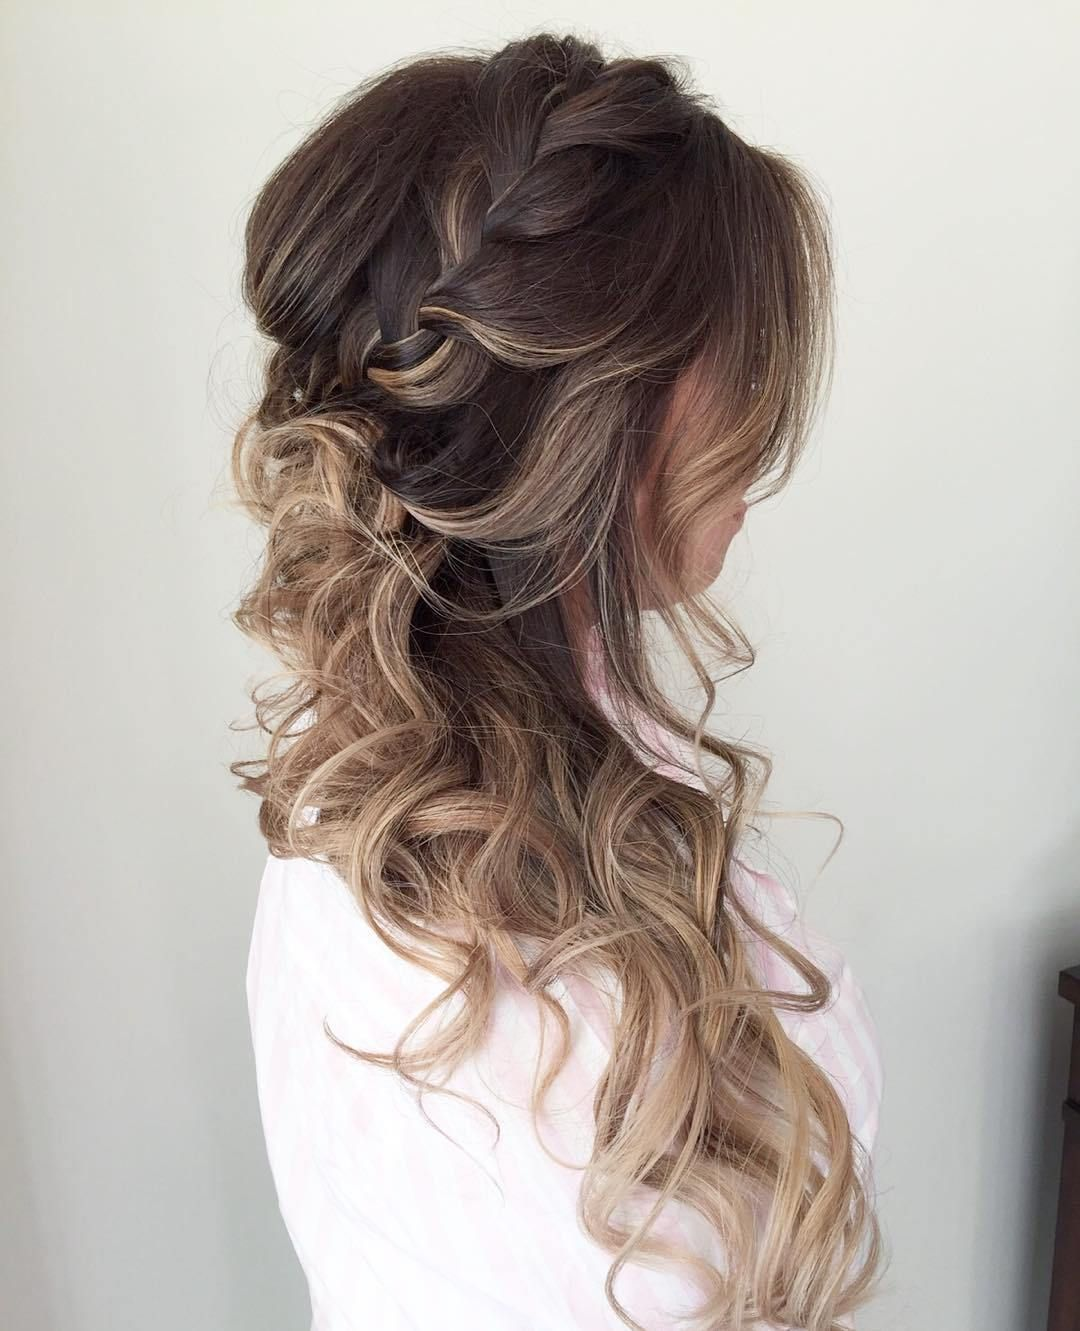 Pin On Updo Ideas